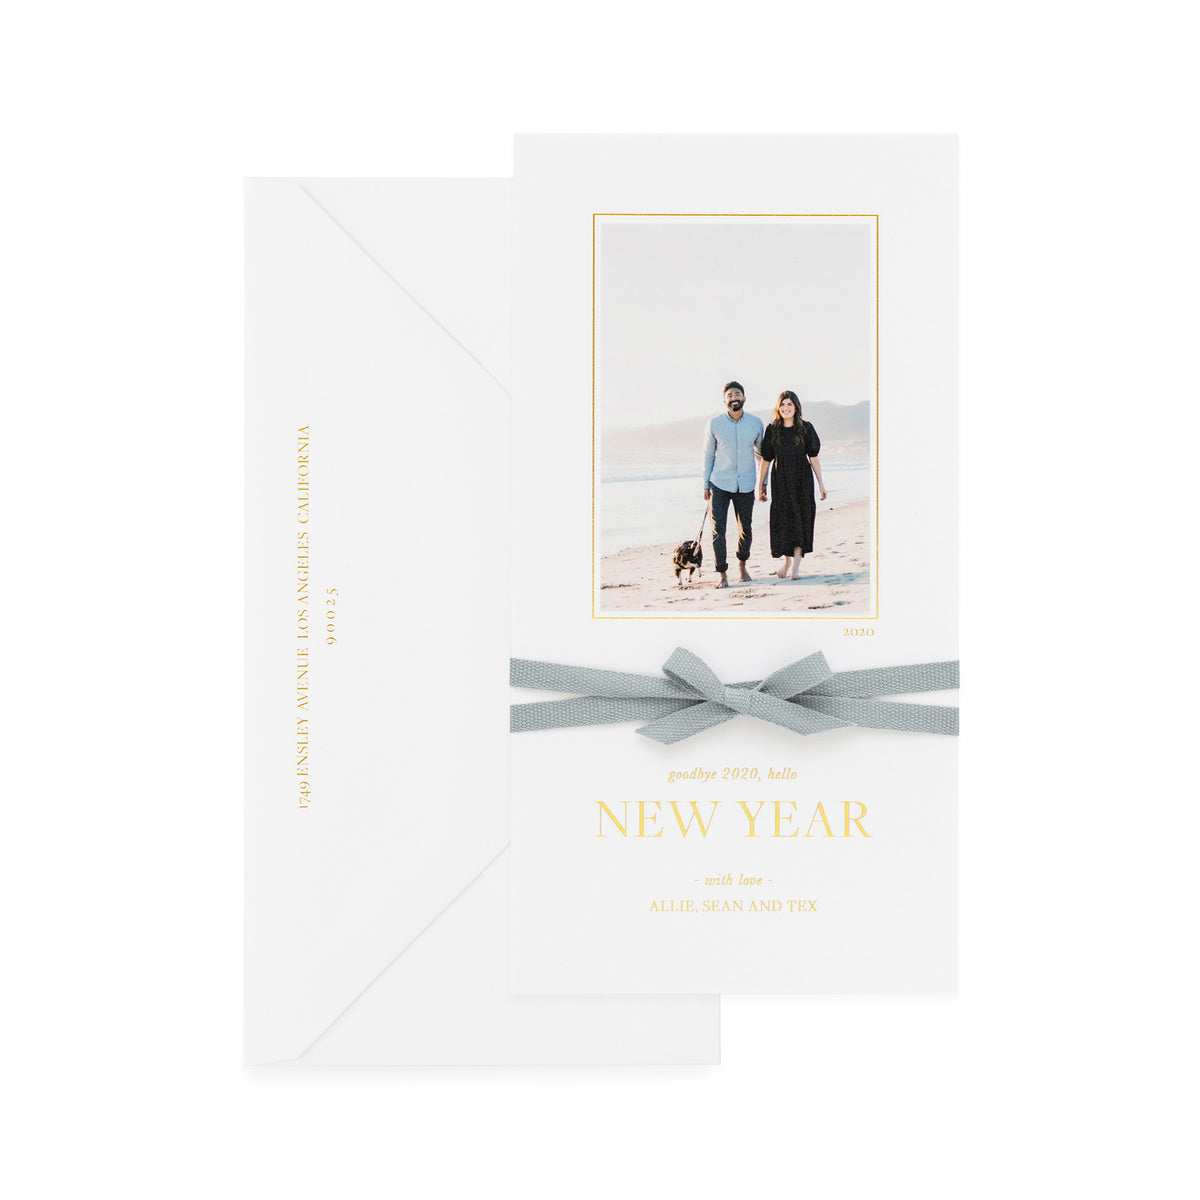 White holiday photo card with goodbye 2020, hello new year with a blue ribbon